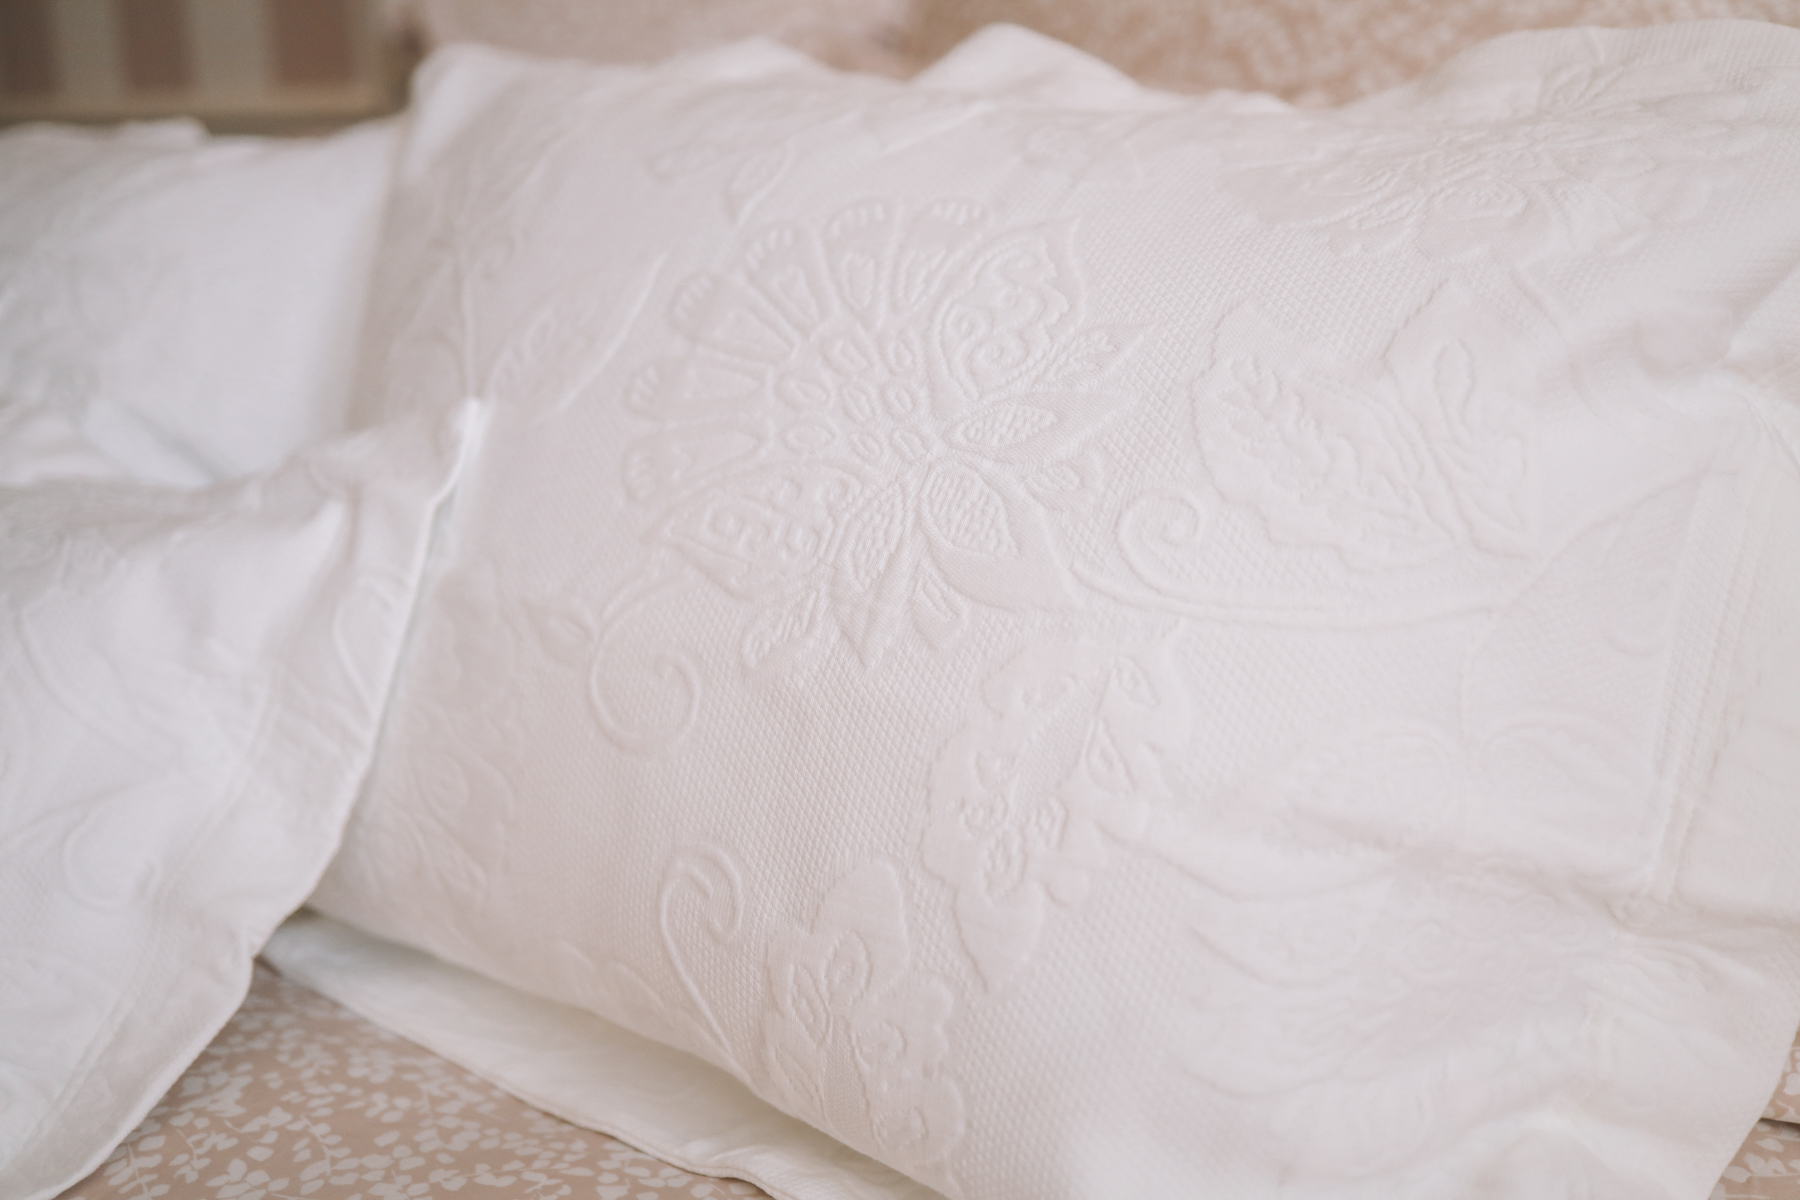 White pillows on pink bed sheets